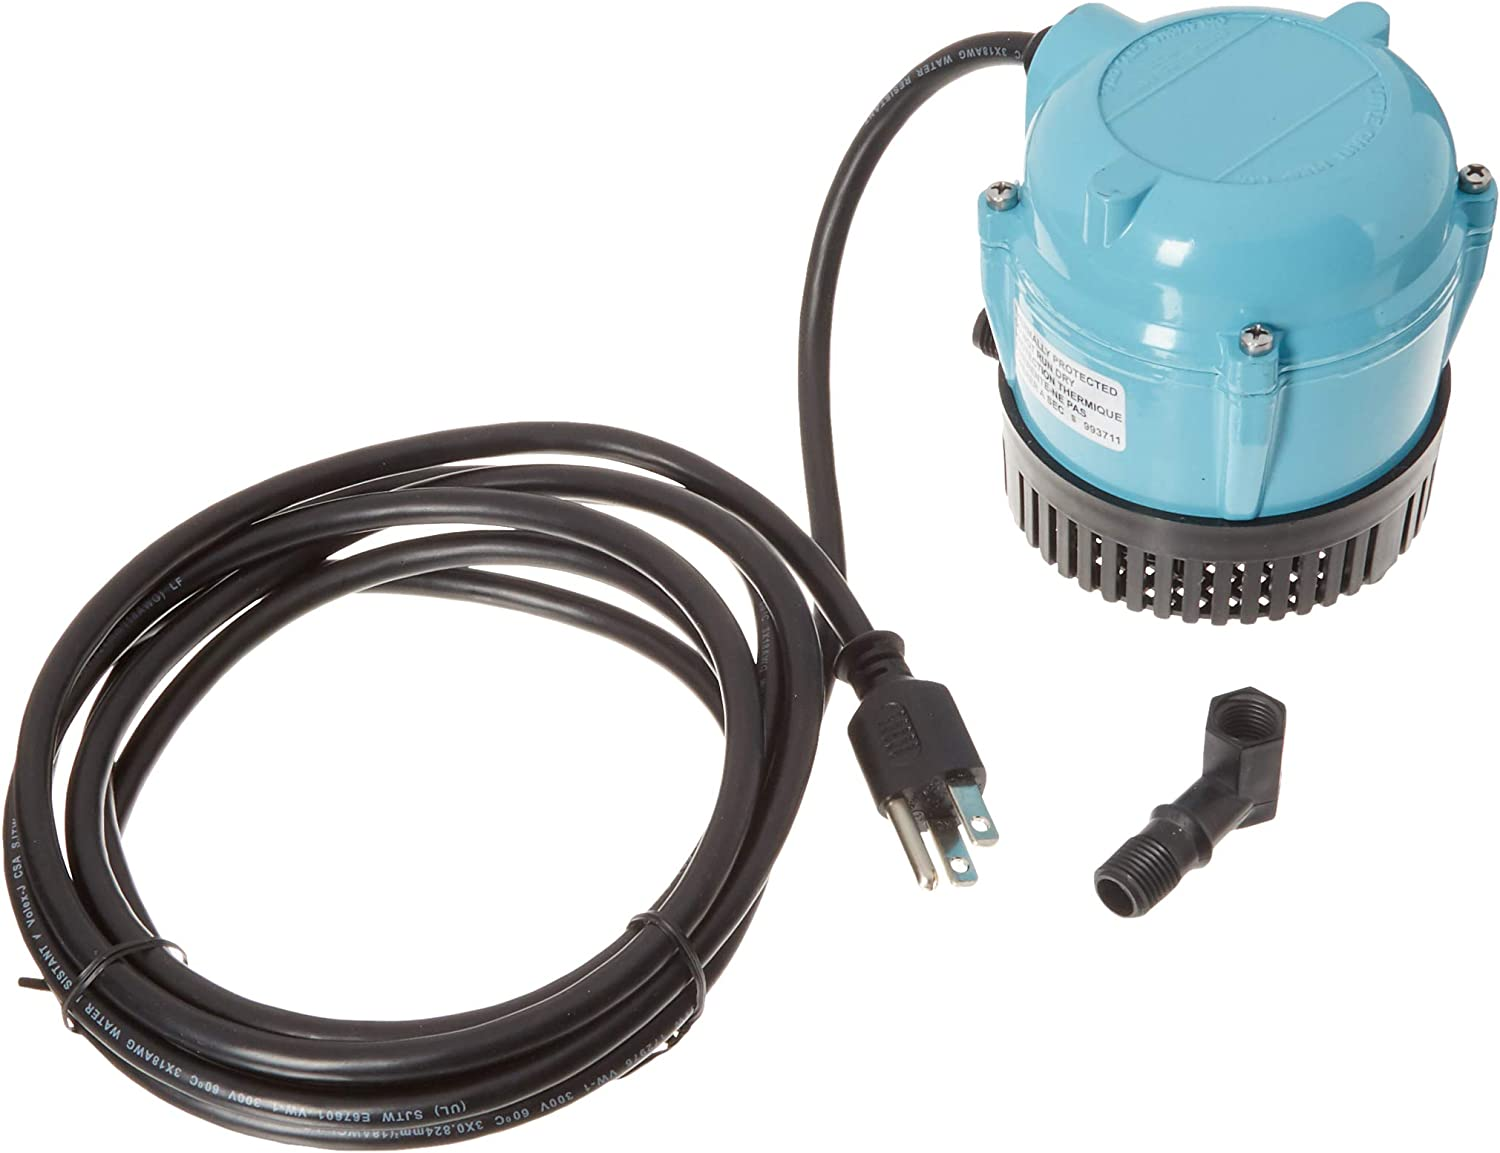 Little Giant 1-at 170 GPH Small Submersible-10' Cord (500286)